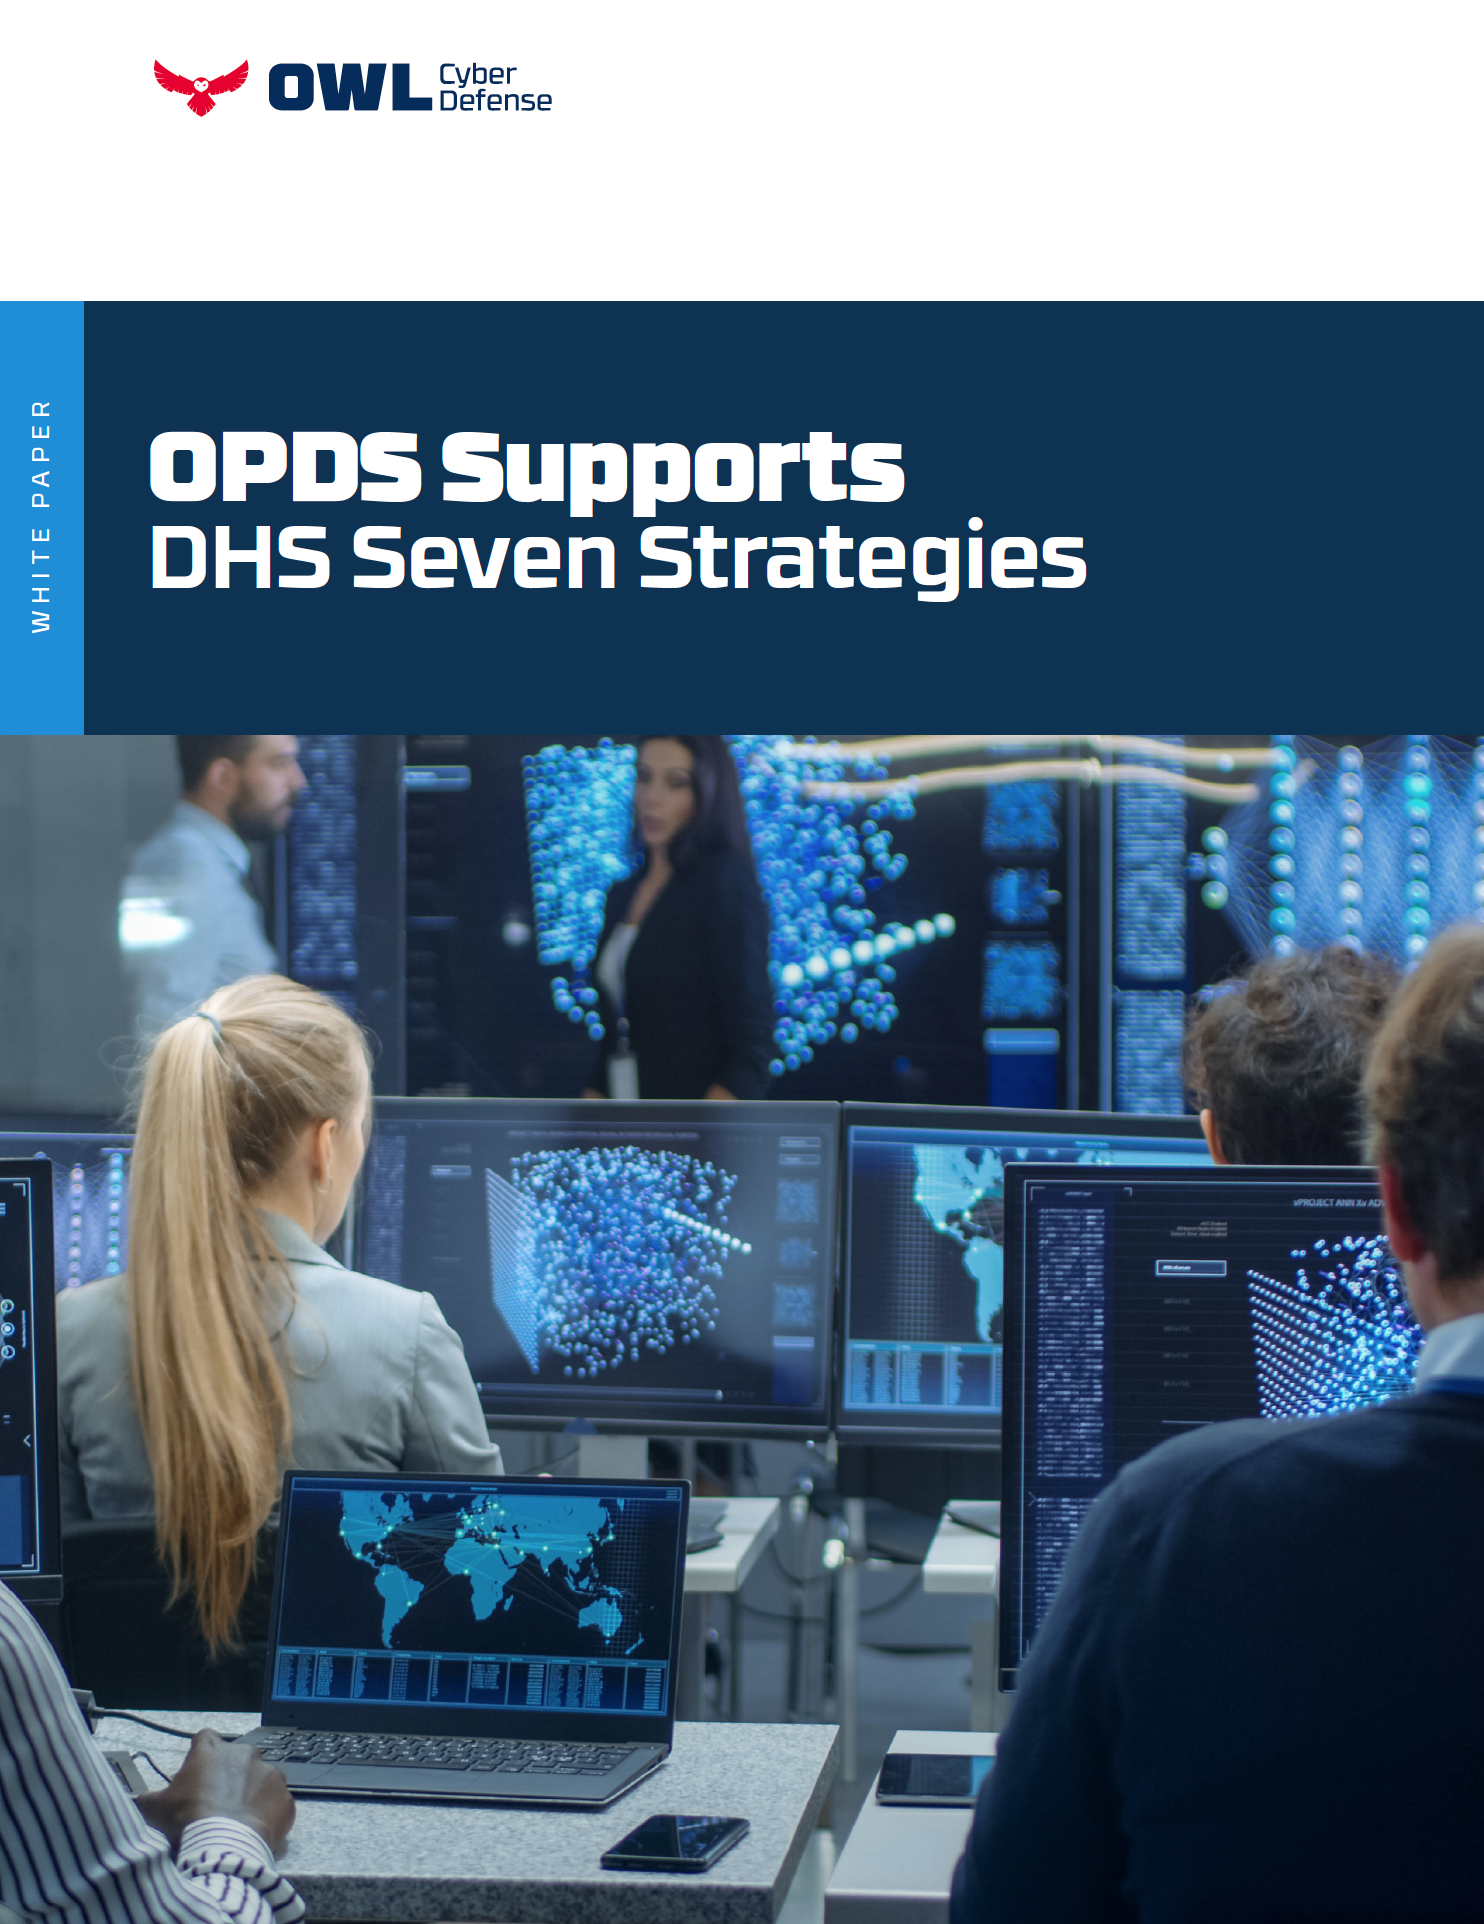 OPDS SupportsDHS 7 Strategies - In order to reduce the risk of cyberattacks against critical infrastructure (transportation, energy, water, etc.), the Department of Homeland Security (DHS), operates the Industrial Control Systems Cyber Emergency Response Team (ICS-CERT).Homeland Security - Seven Steps to Effectively Defend Industrial Control Systems